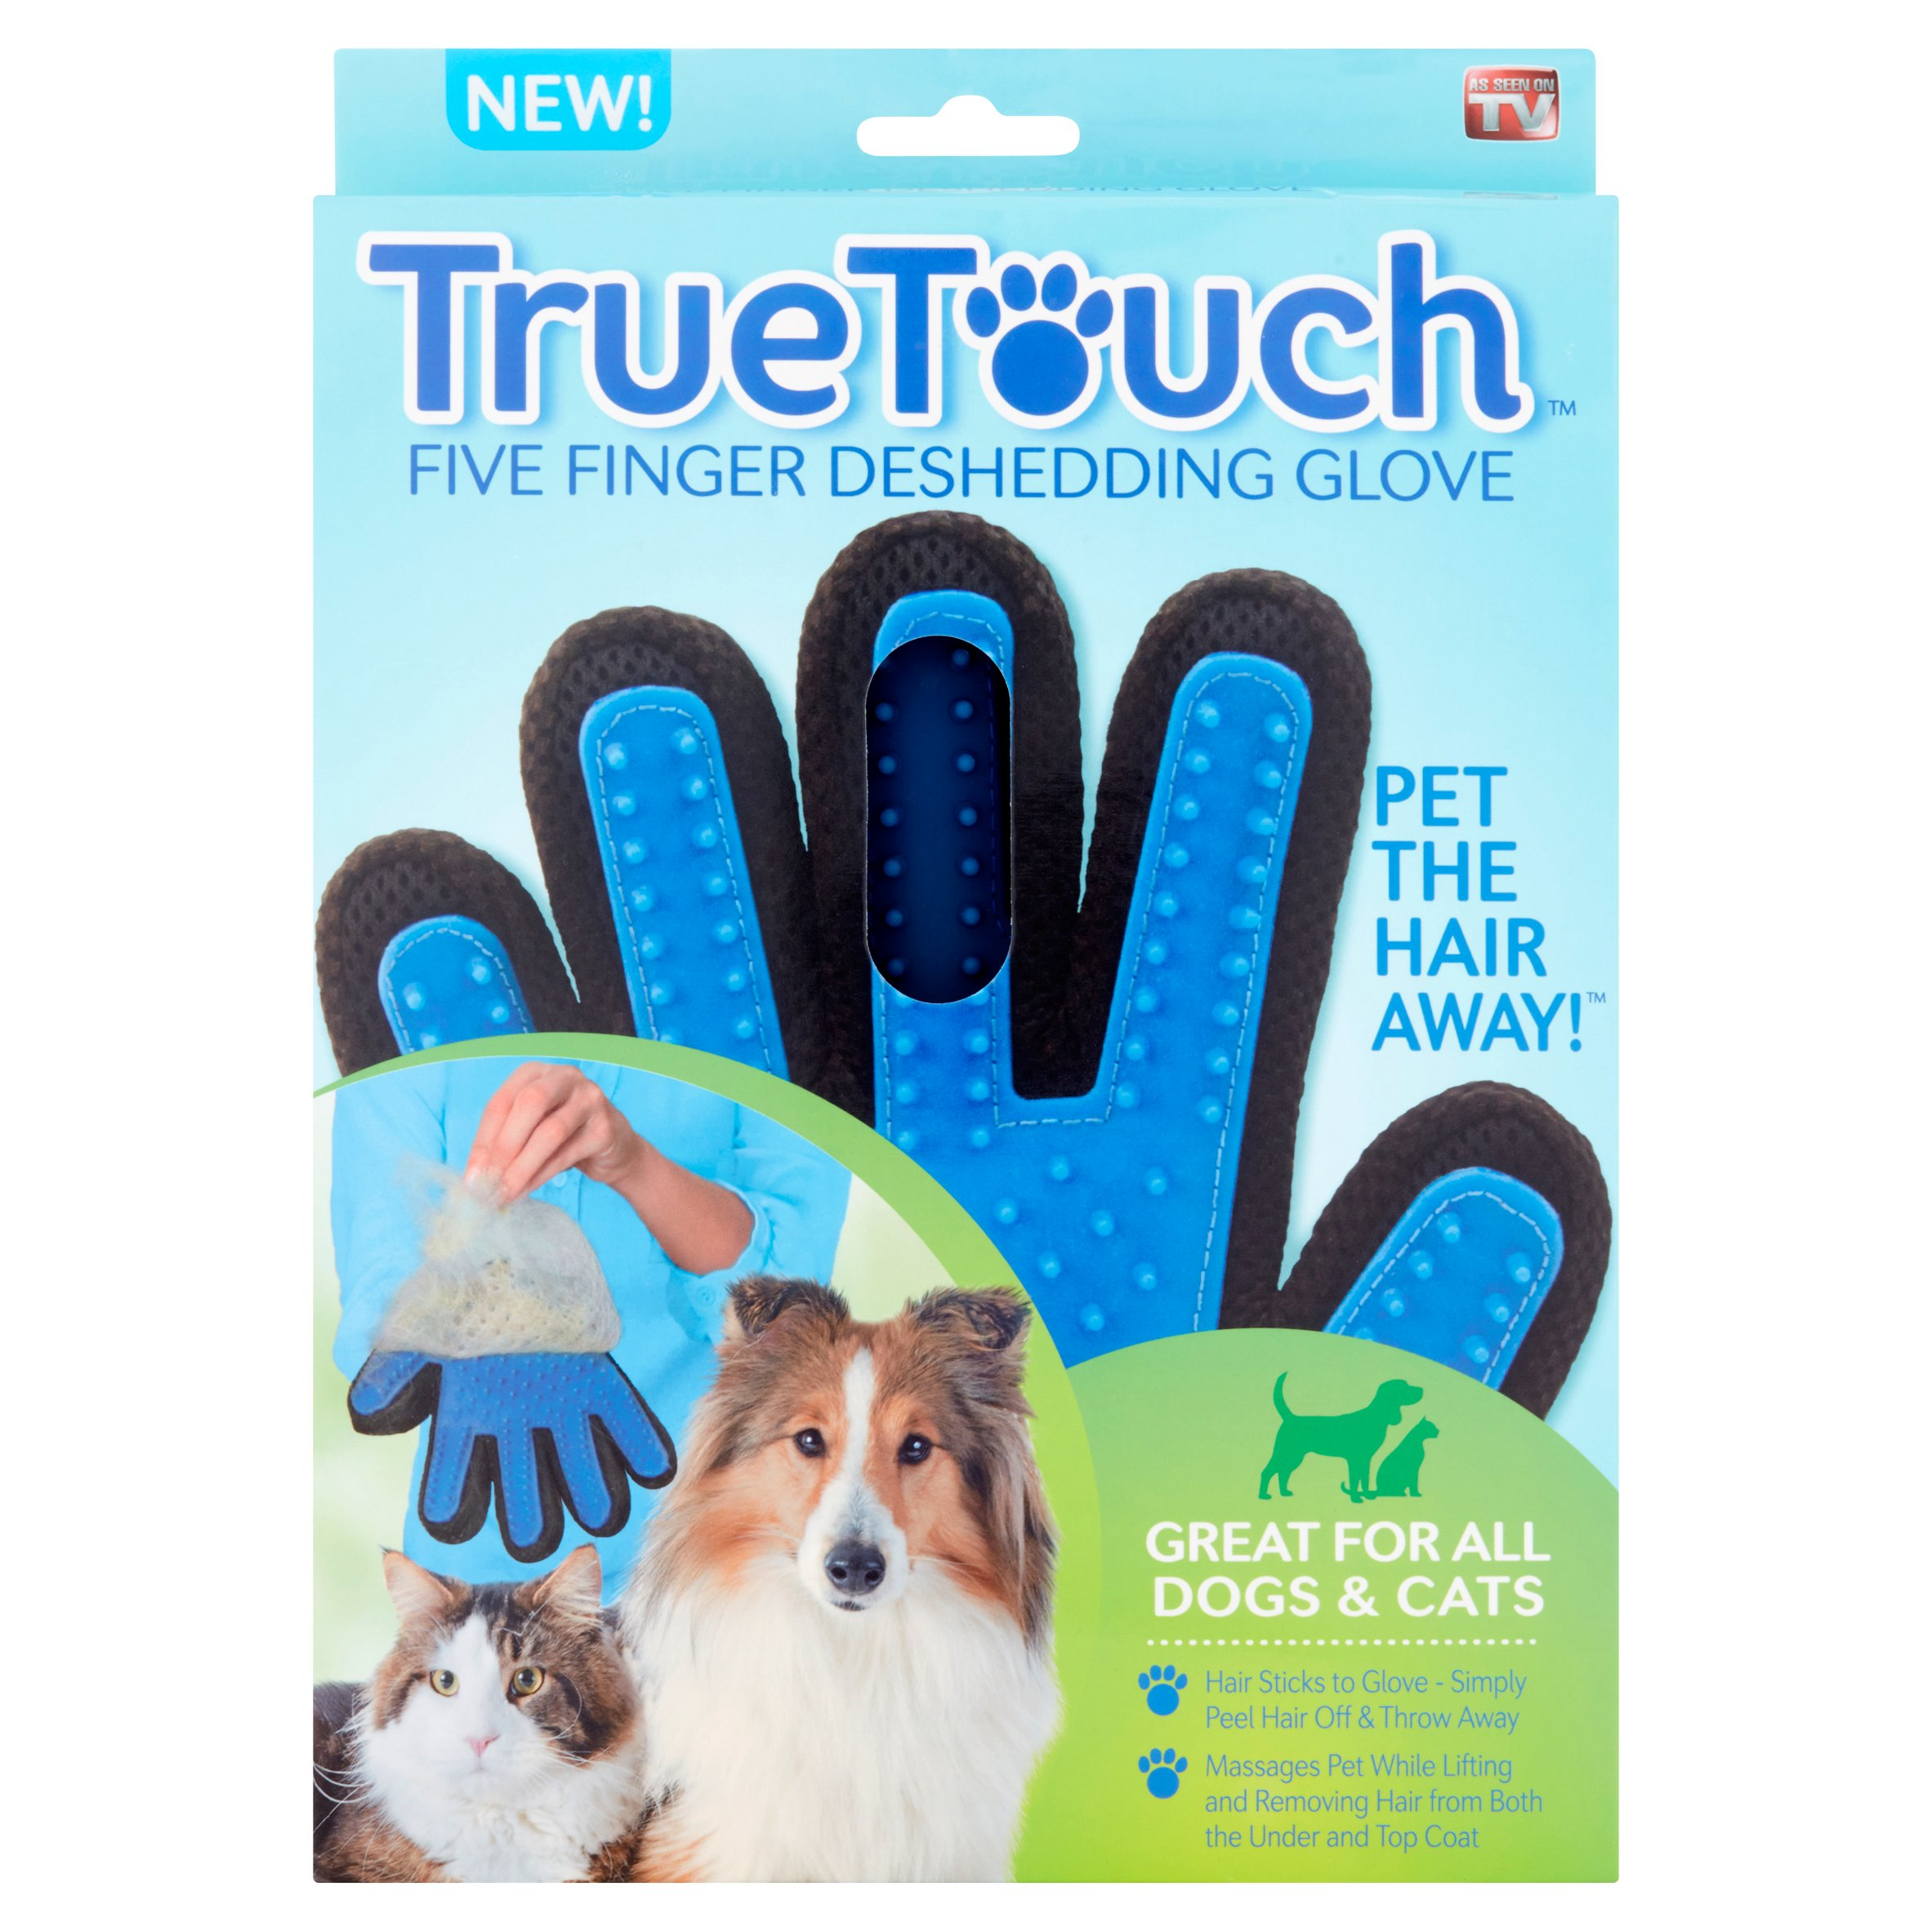 Dog grooming walmart solutioingenieria Image collections